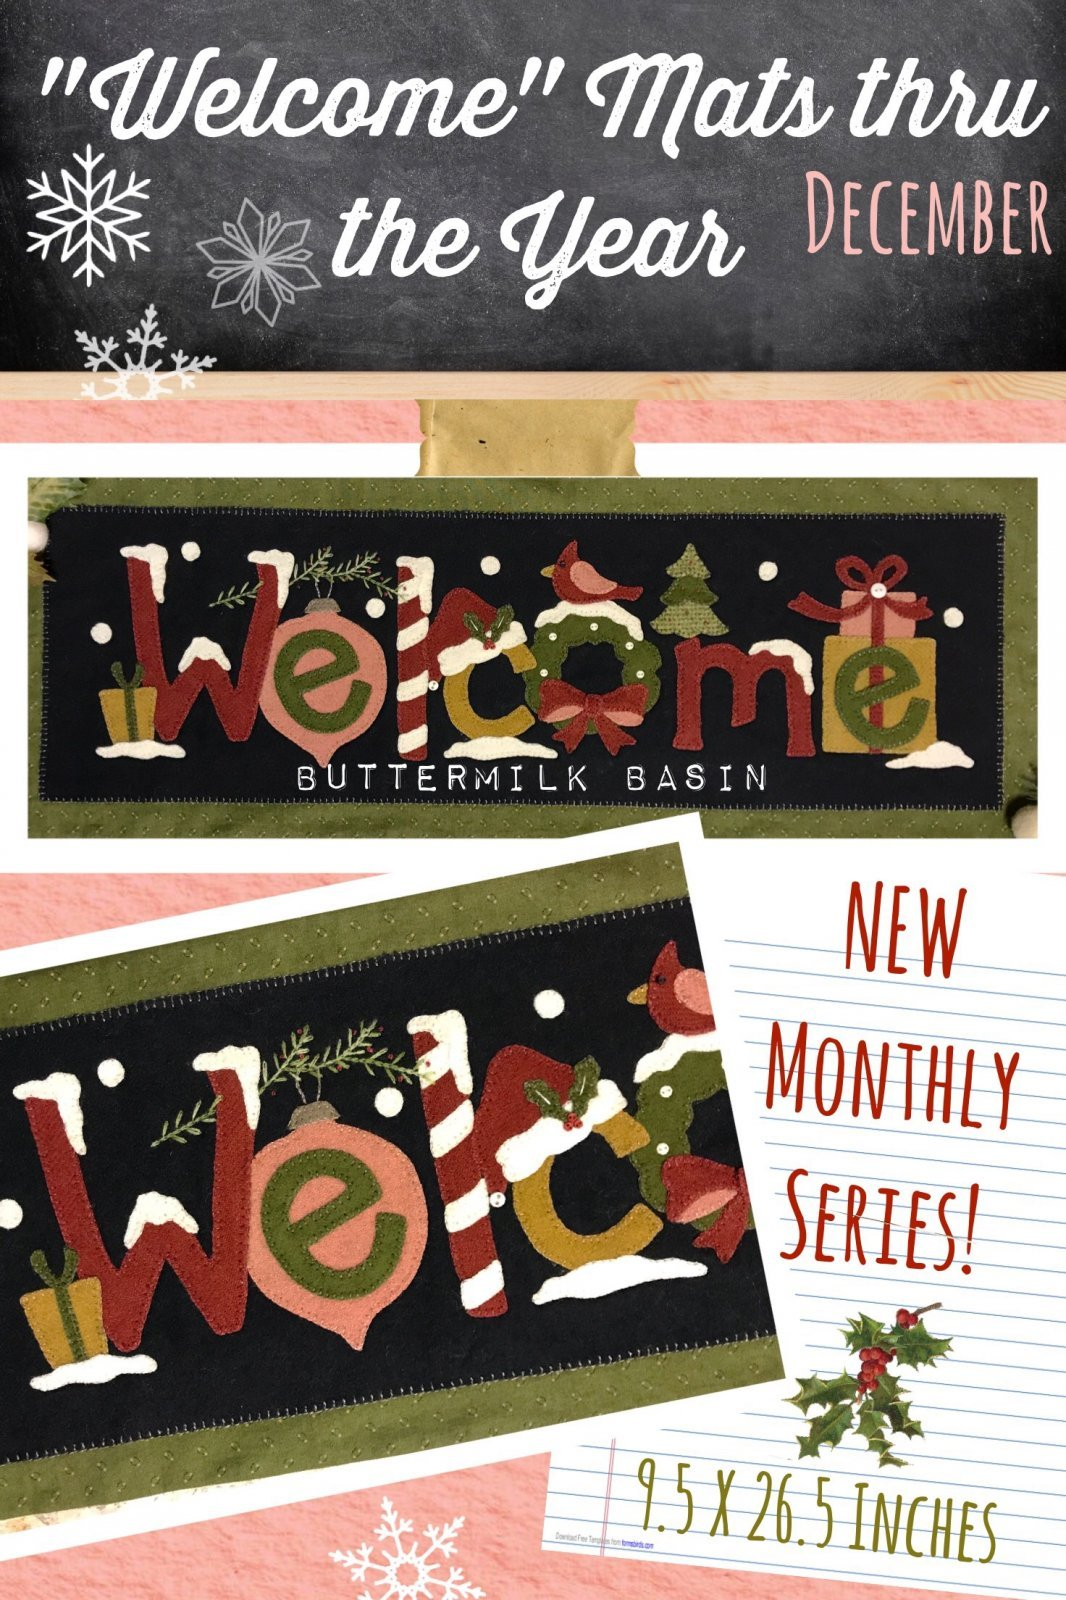 Welcome Mat thru the Year * December Pattern